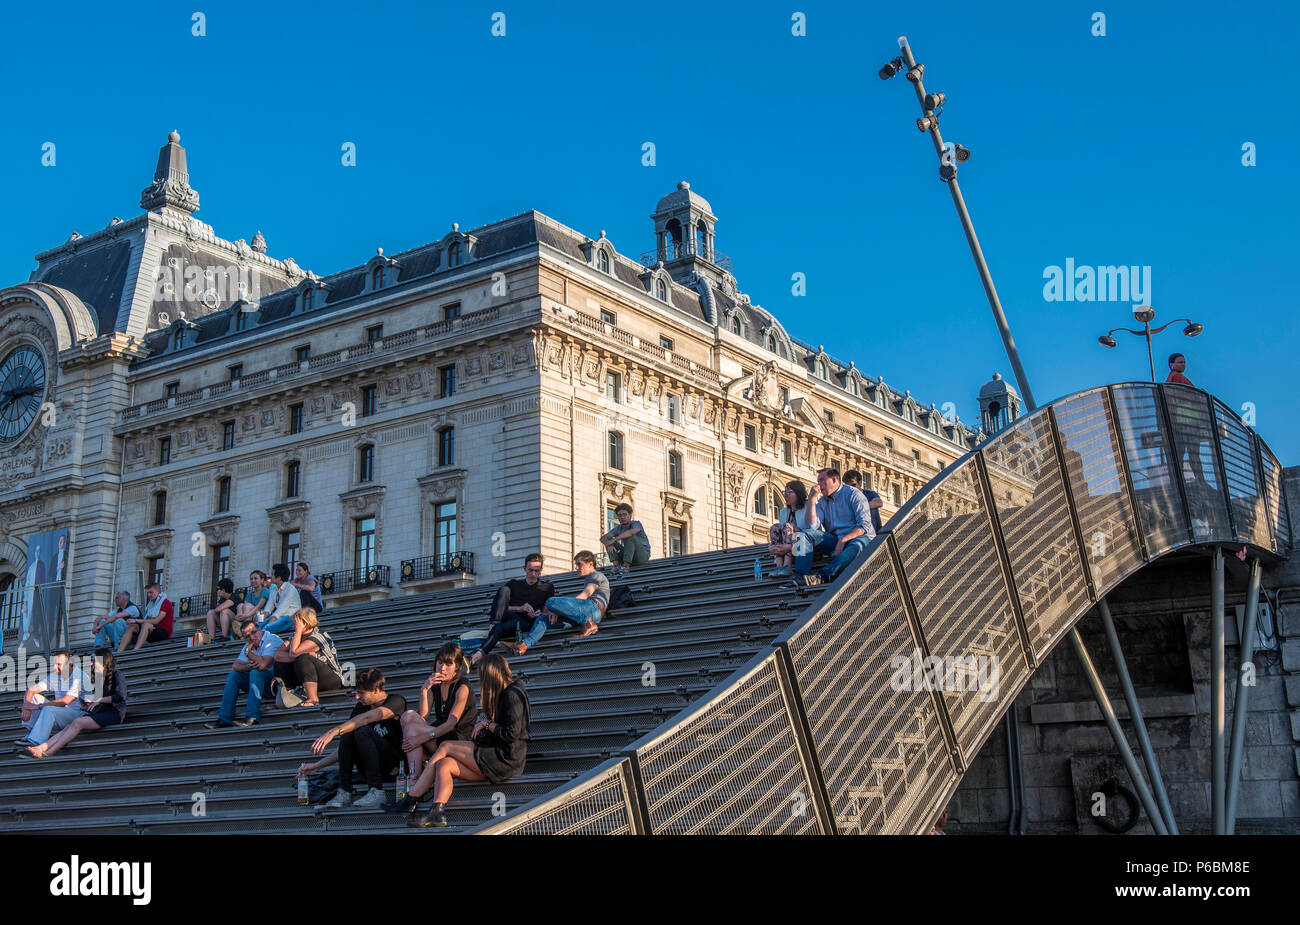 France, Ile de France, Paris, 7th district, steel bleachers on the bank at the foot of the Musee d'Orsay - Stock Image